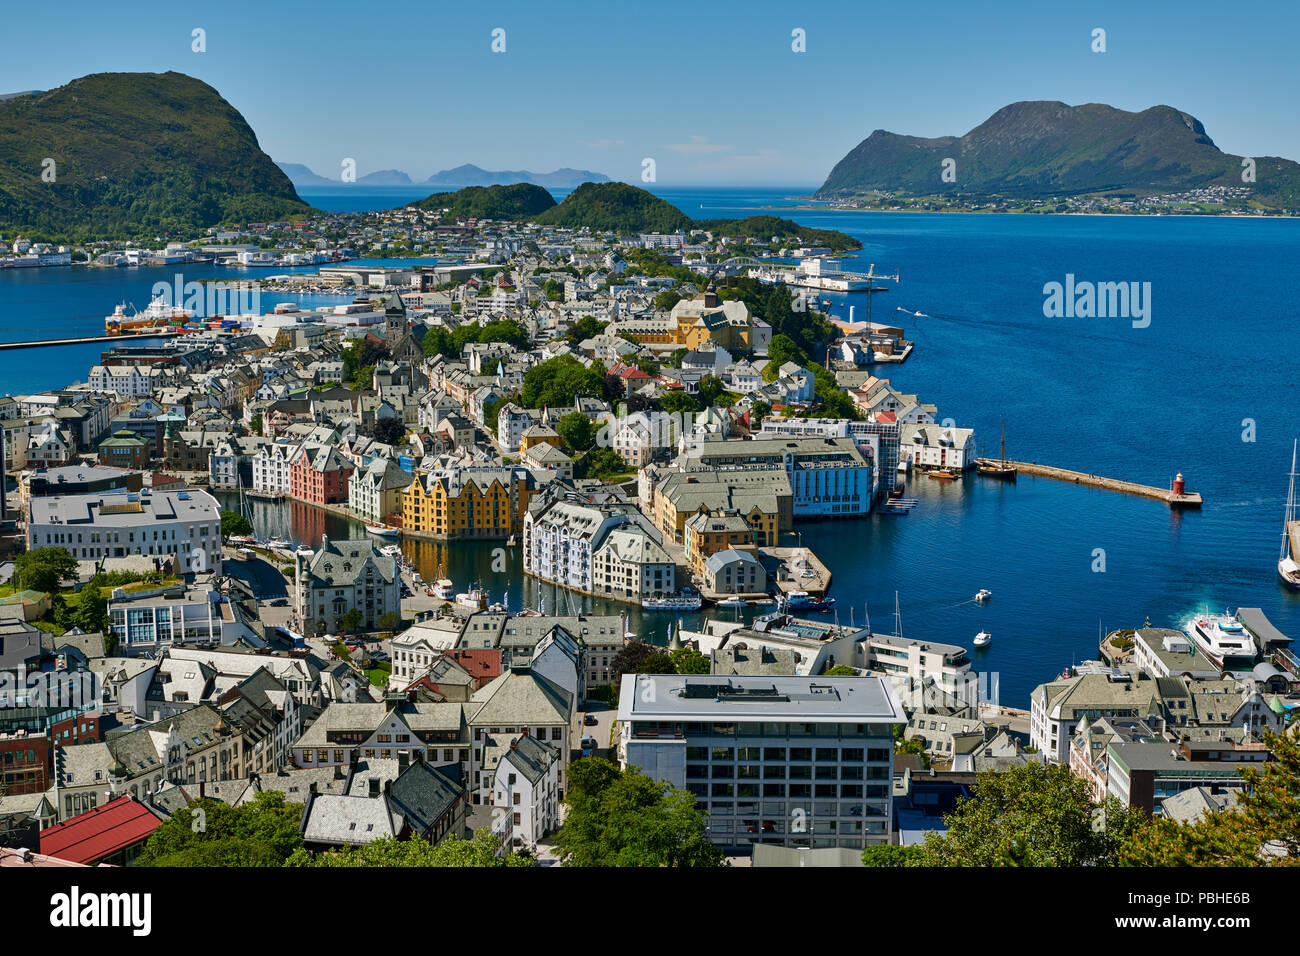 View from Aksla hill over Alesund and surrounding waters, Byrampen Viewpoint, More og Romsdal, Norway, Scandinavia, Europe - Stock Image